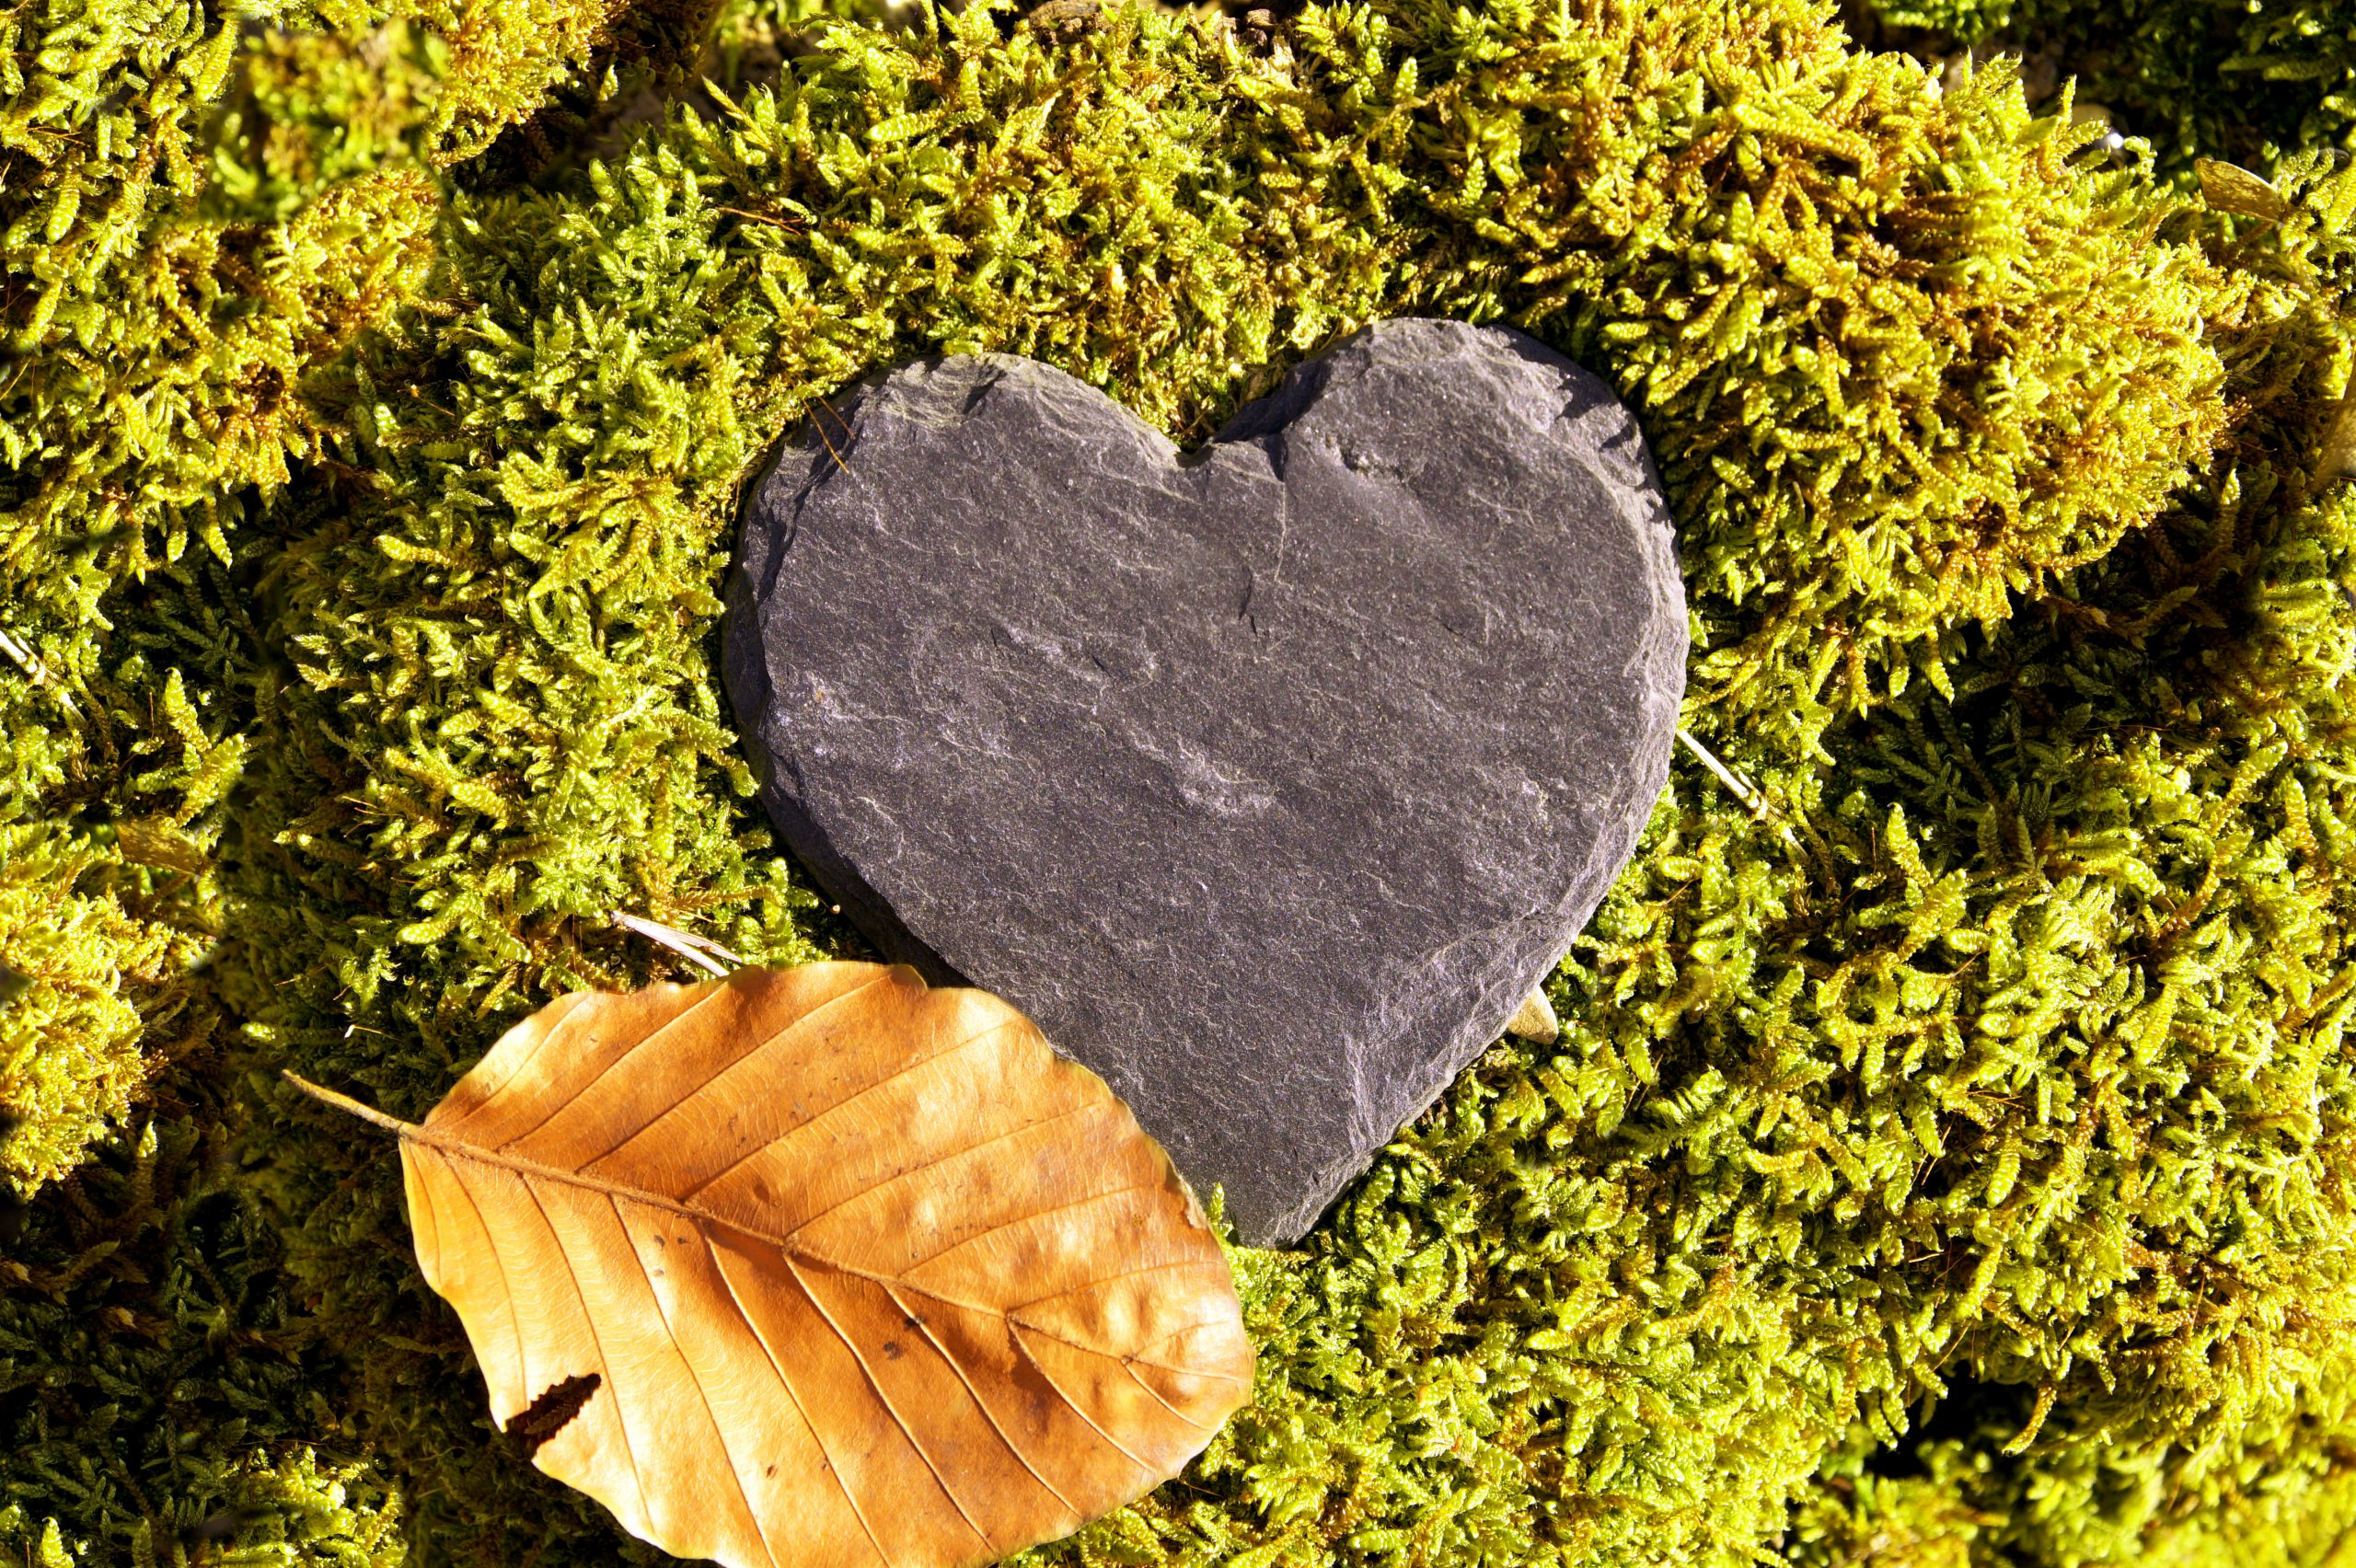 Heart shaped stone surrounded by moss and a single leaf